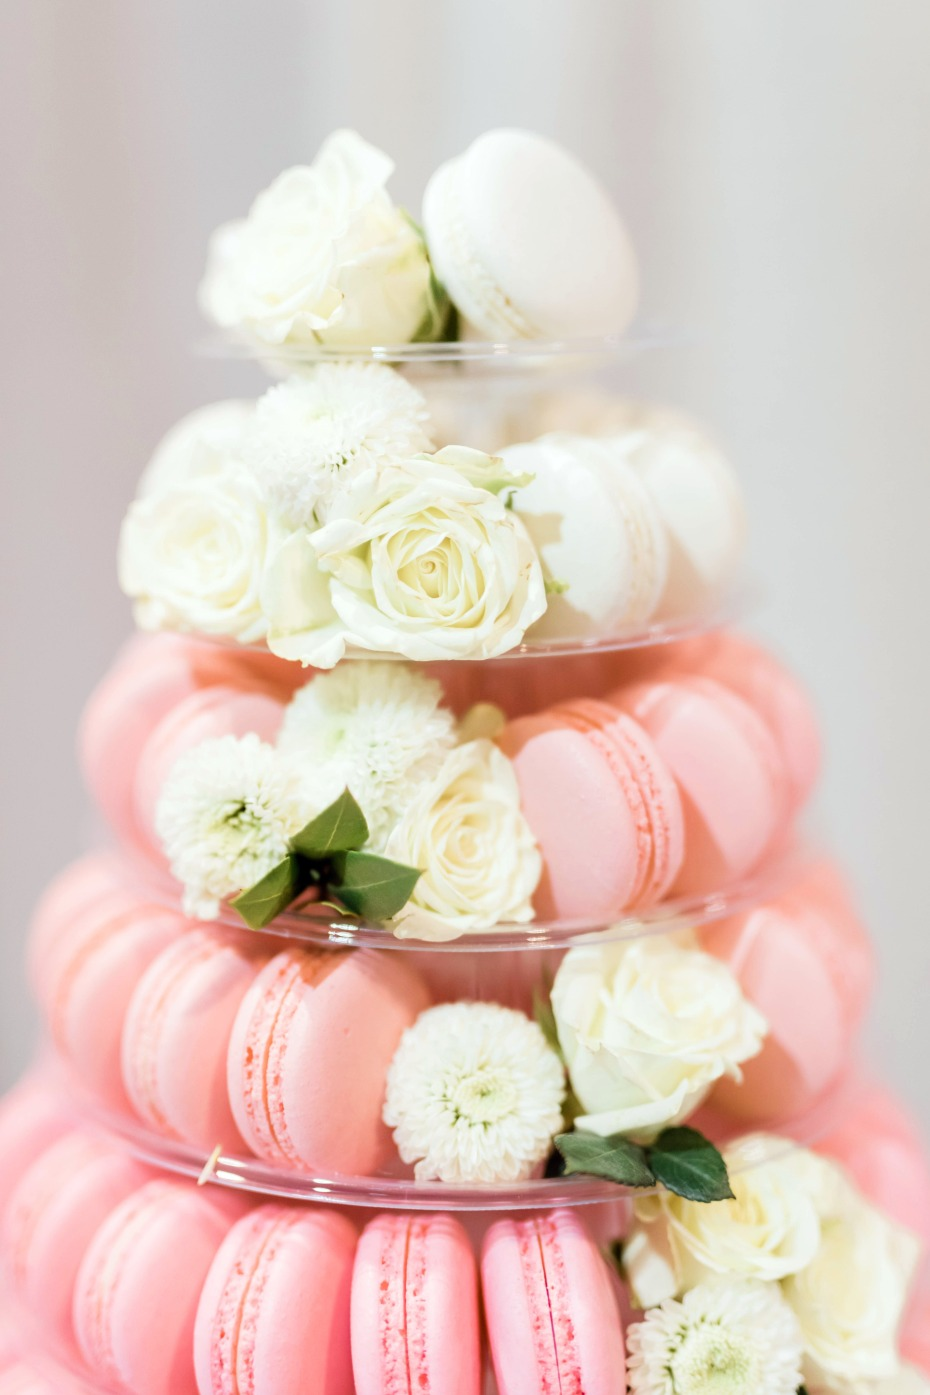 This Boise-Based Bakery Makes the Most Heavenly Macarons